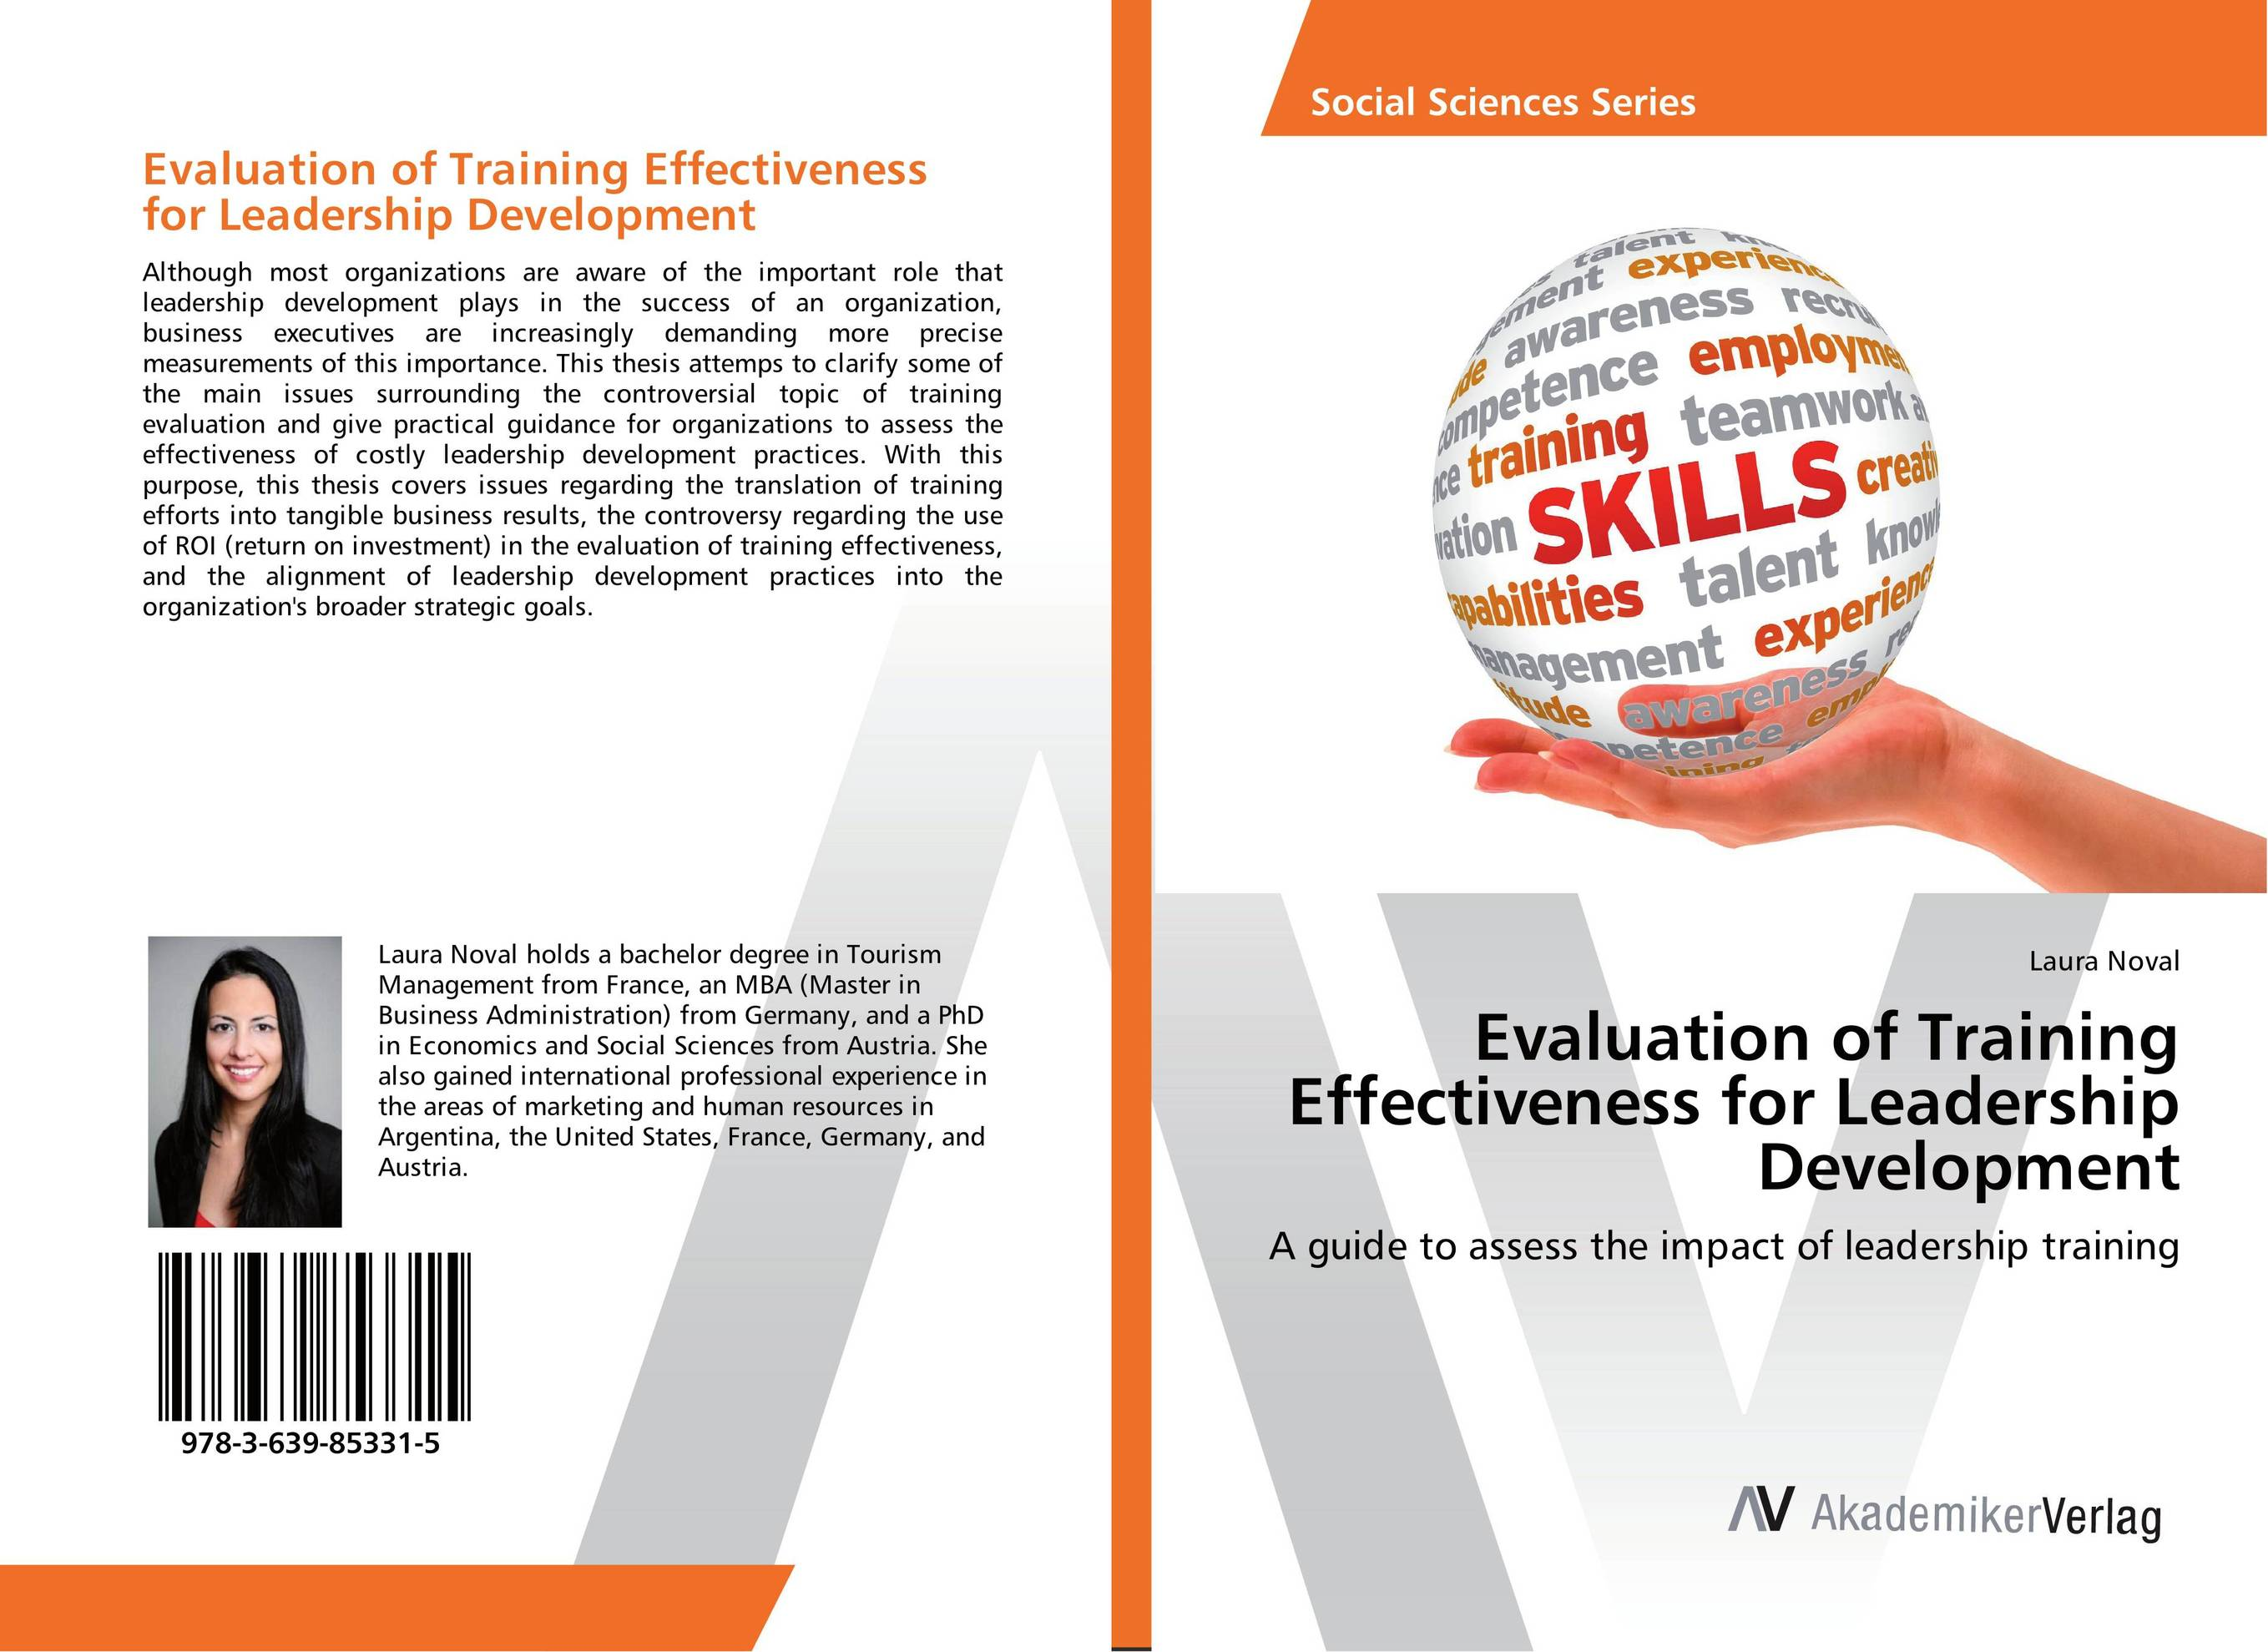 Evaluation of Training Effectiveness for Leadership Development